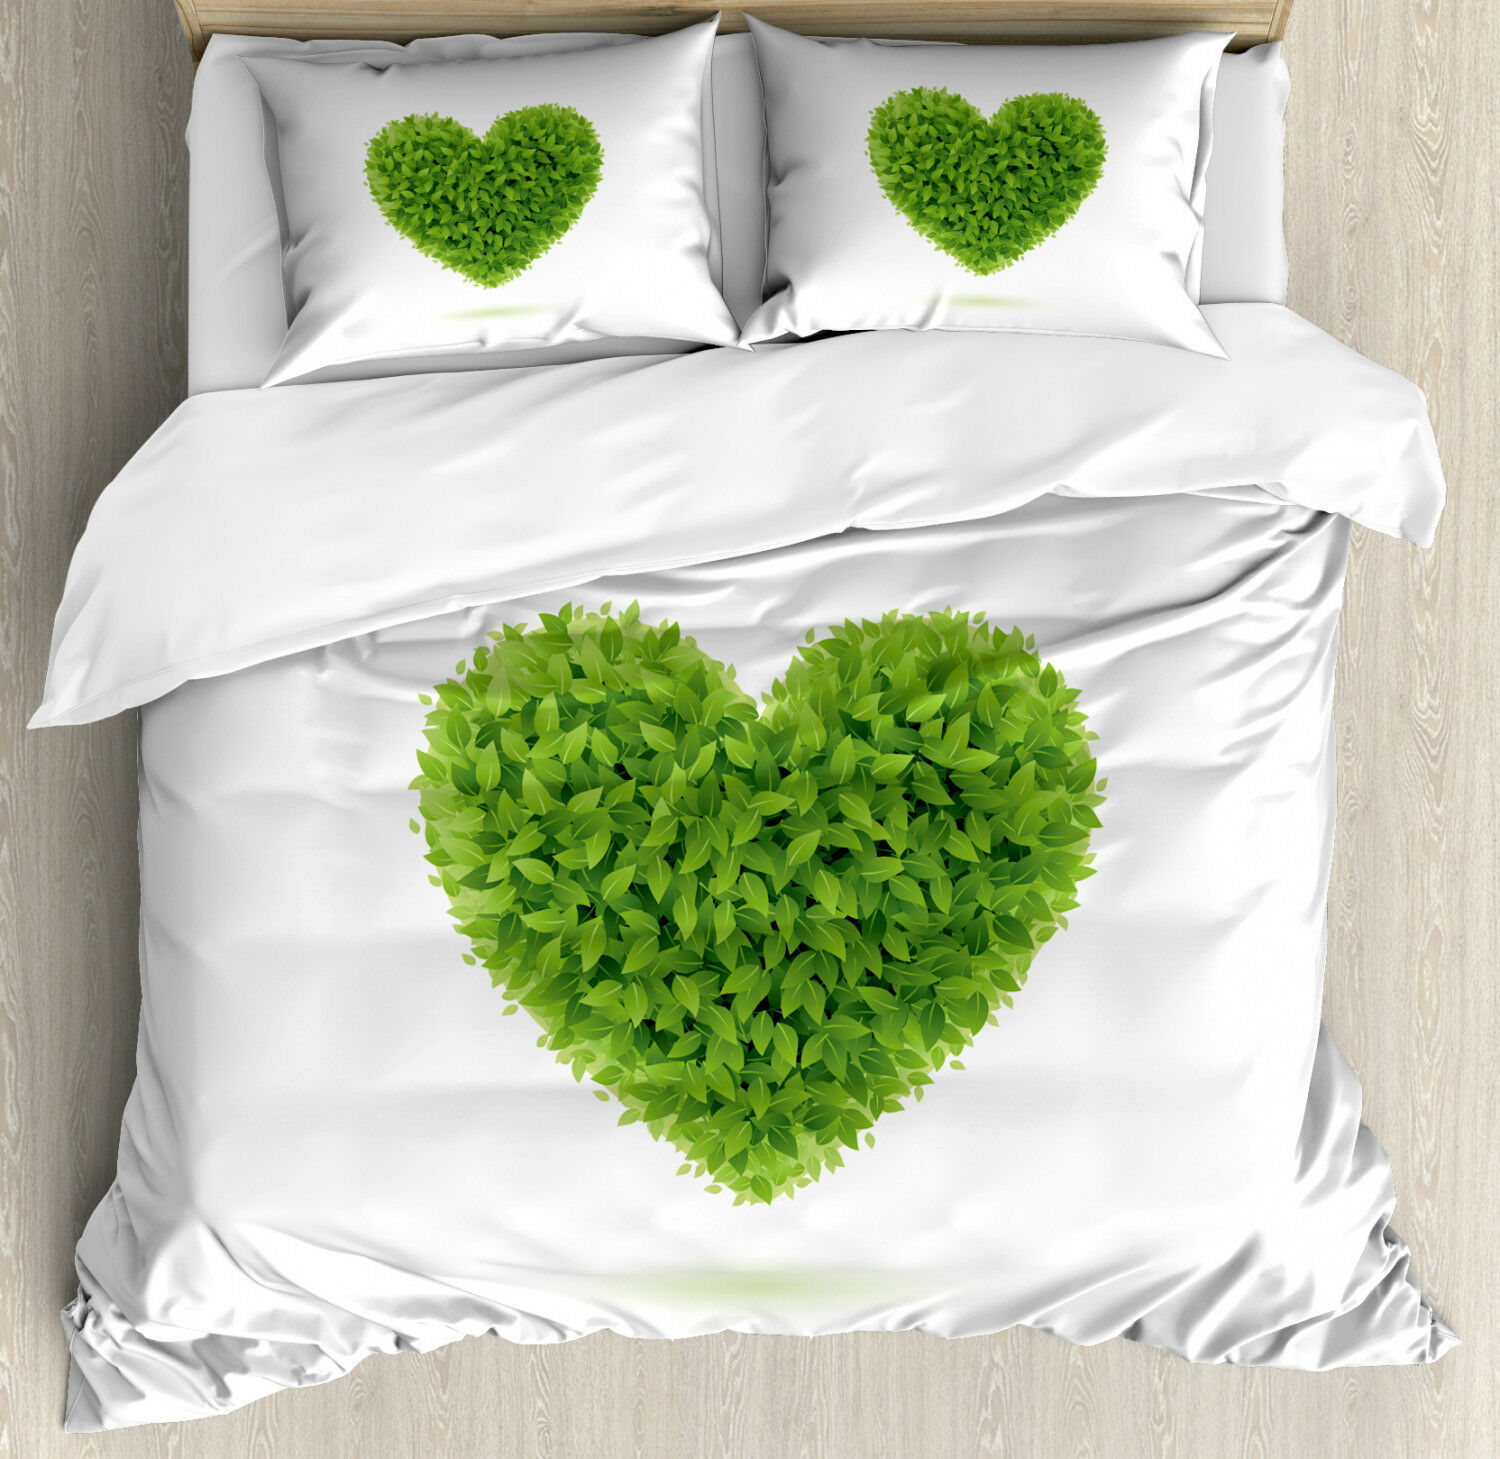 Grün Duvet Cover Set with Pillow Shams Heart with Fresh Leaves Print